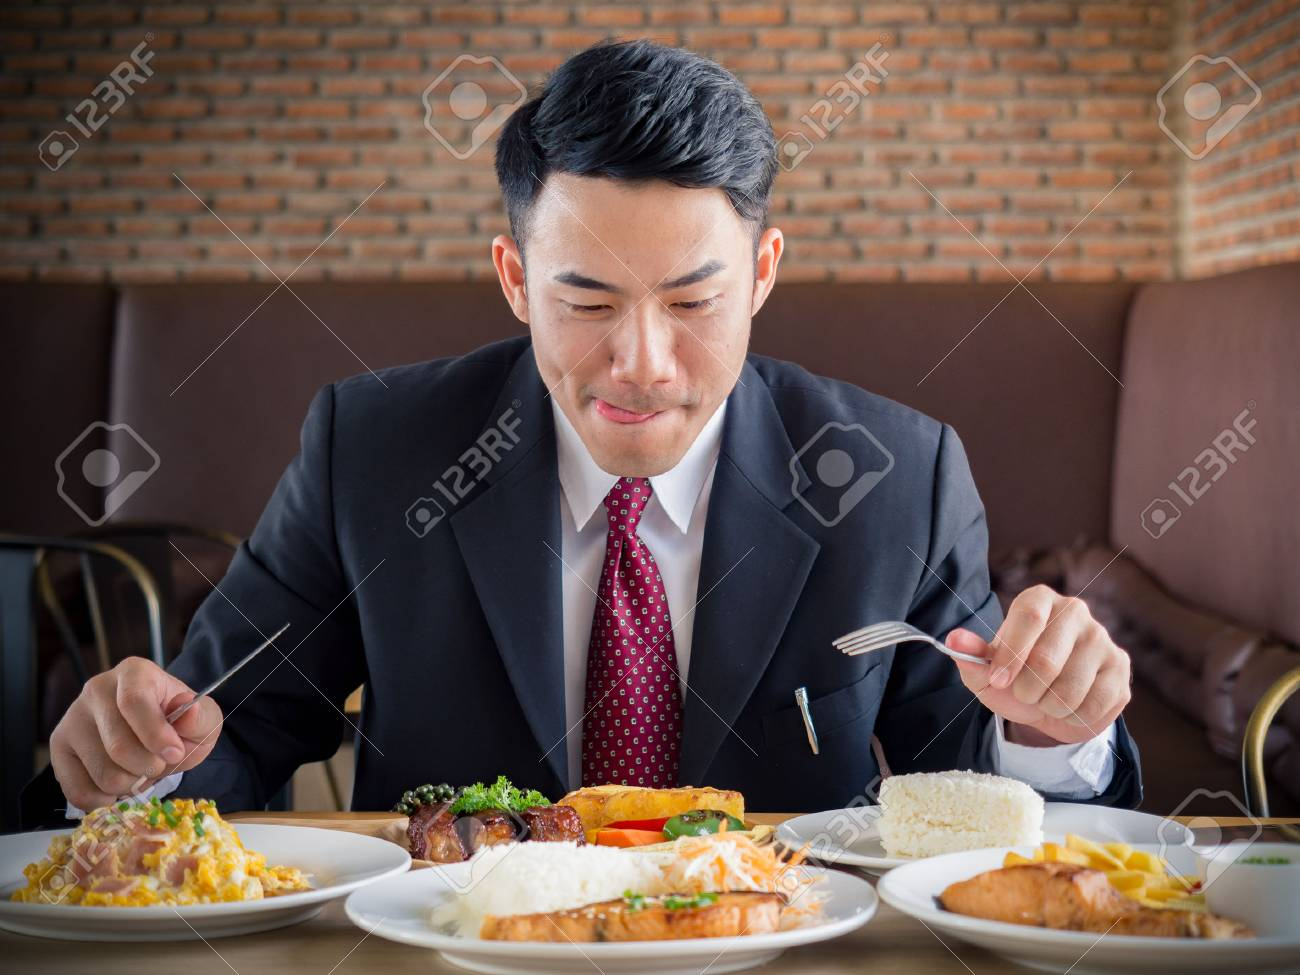 Young asian businessman in formal suit feeling hungry, eating many foods on table at cafe - 87855726